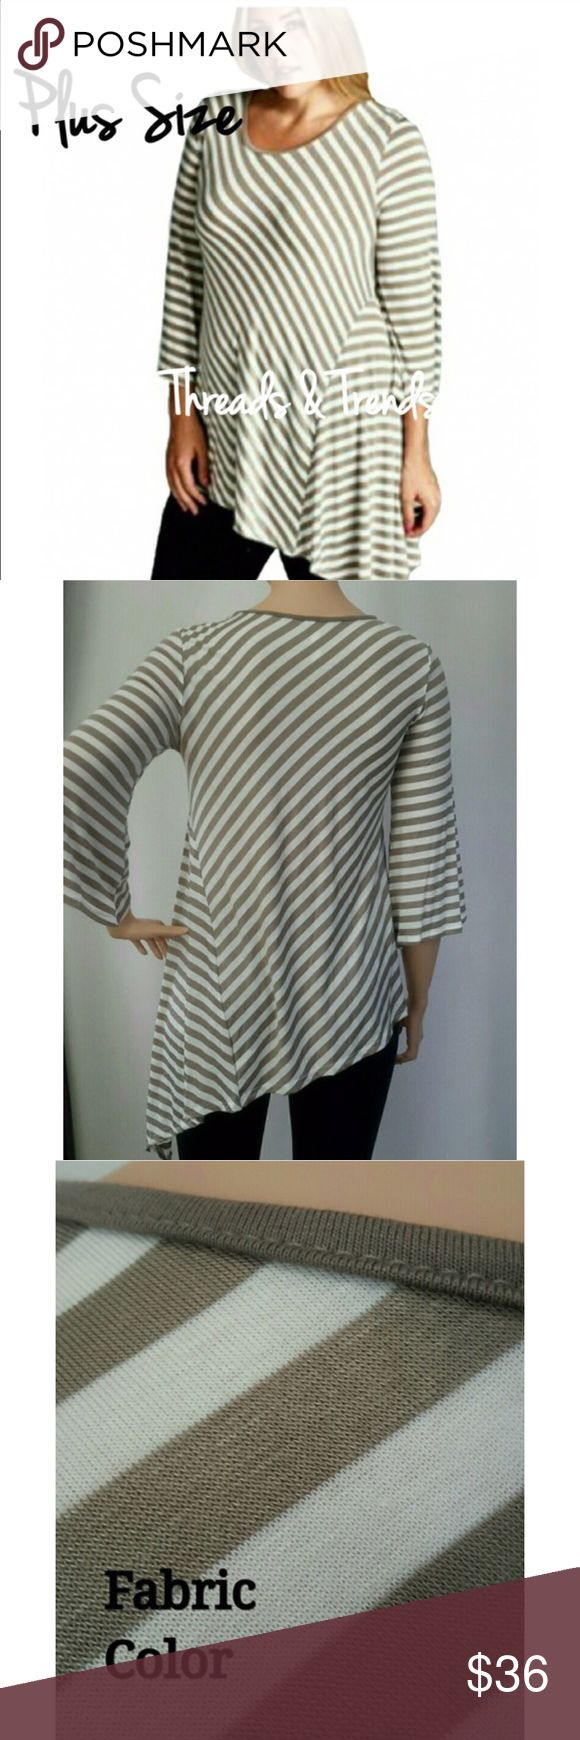 "Plus Size! Striped Tunic Beautiful color of taupe and white striped tunic top. Featuring stripes on a angle for a slimmer look. Poet sleeves. May of rayon and spandex. Size XL, XXL, XXXL.                                                                          Xl 38"" to 42"" bust, length 29""/40""                                                                                                              XXL 40 to 44 bust  length 29""/40                                                   XXXL…"